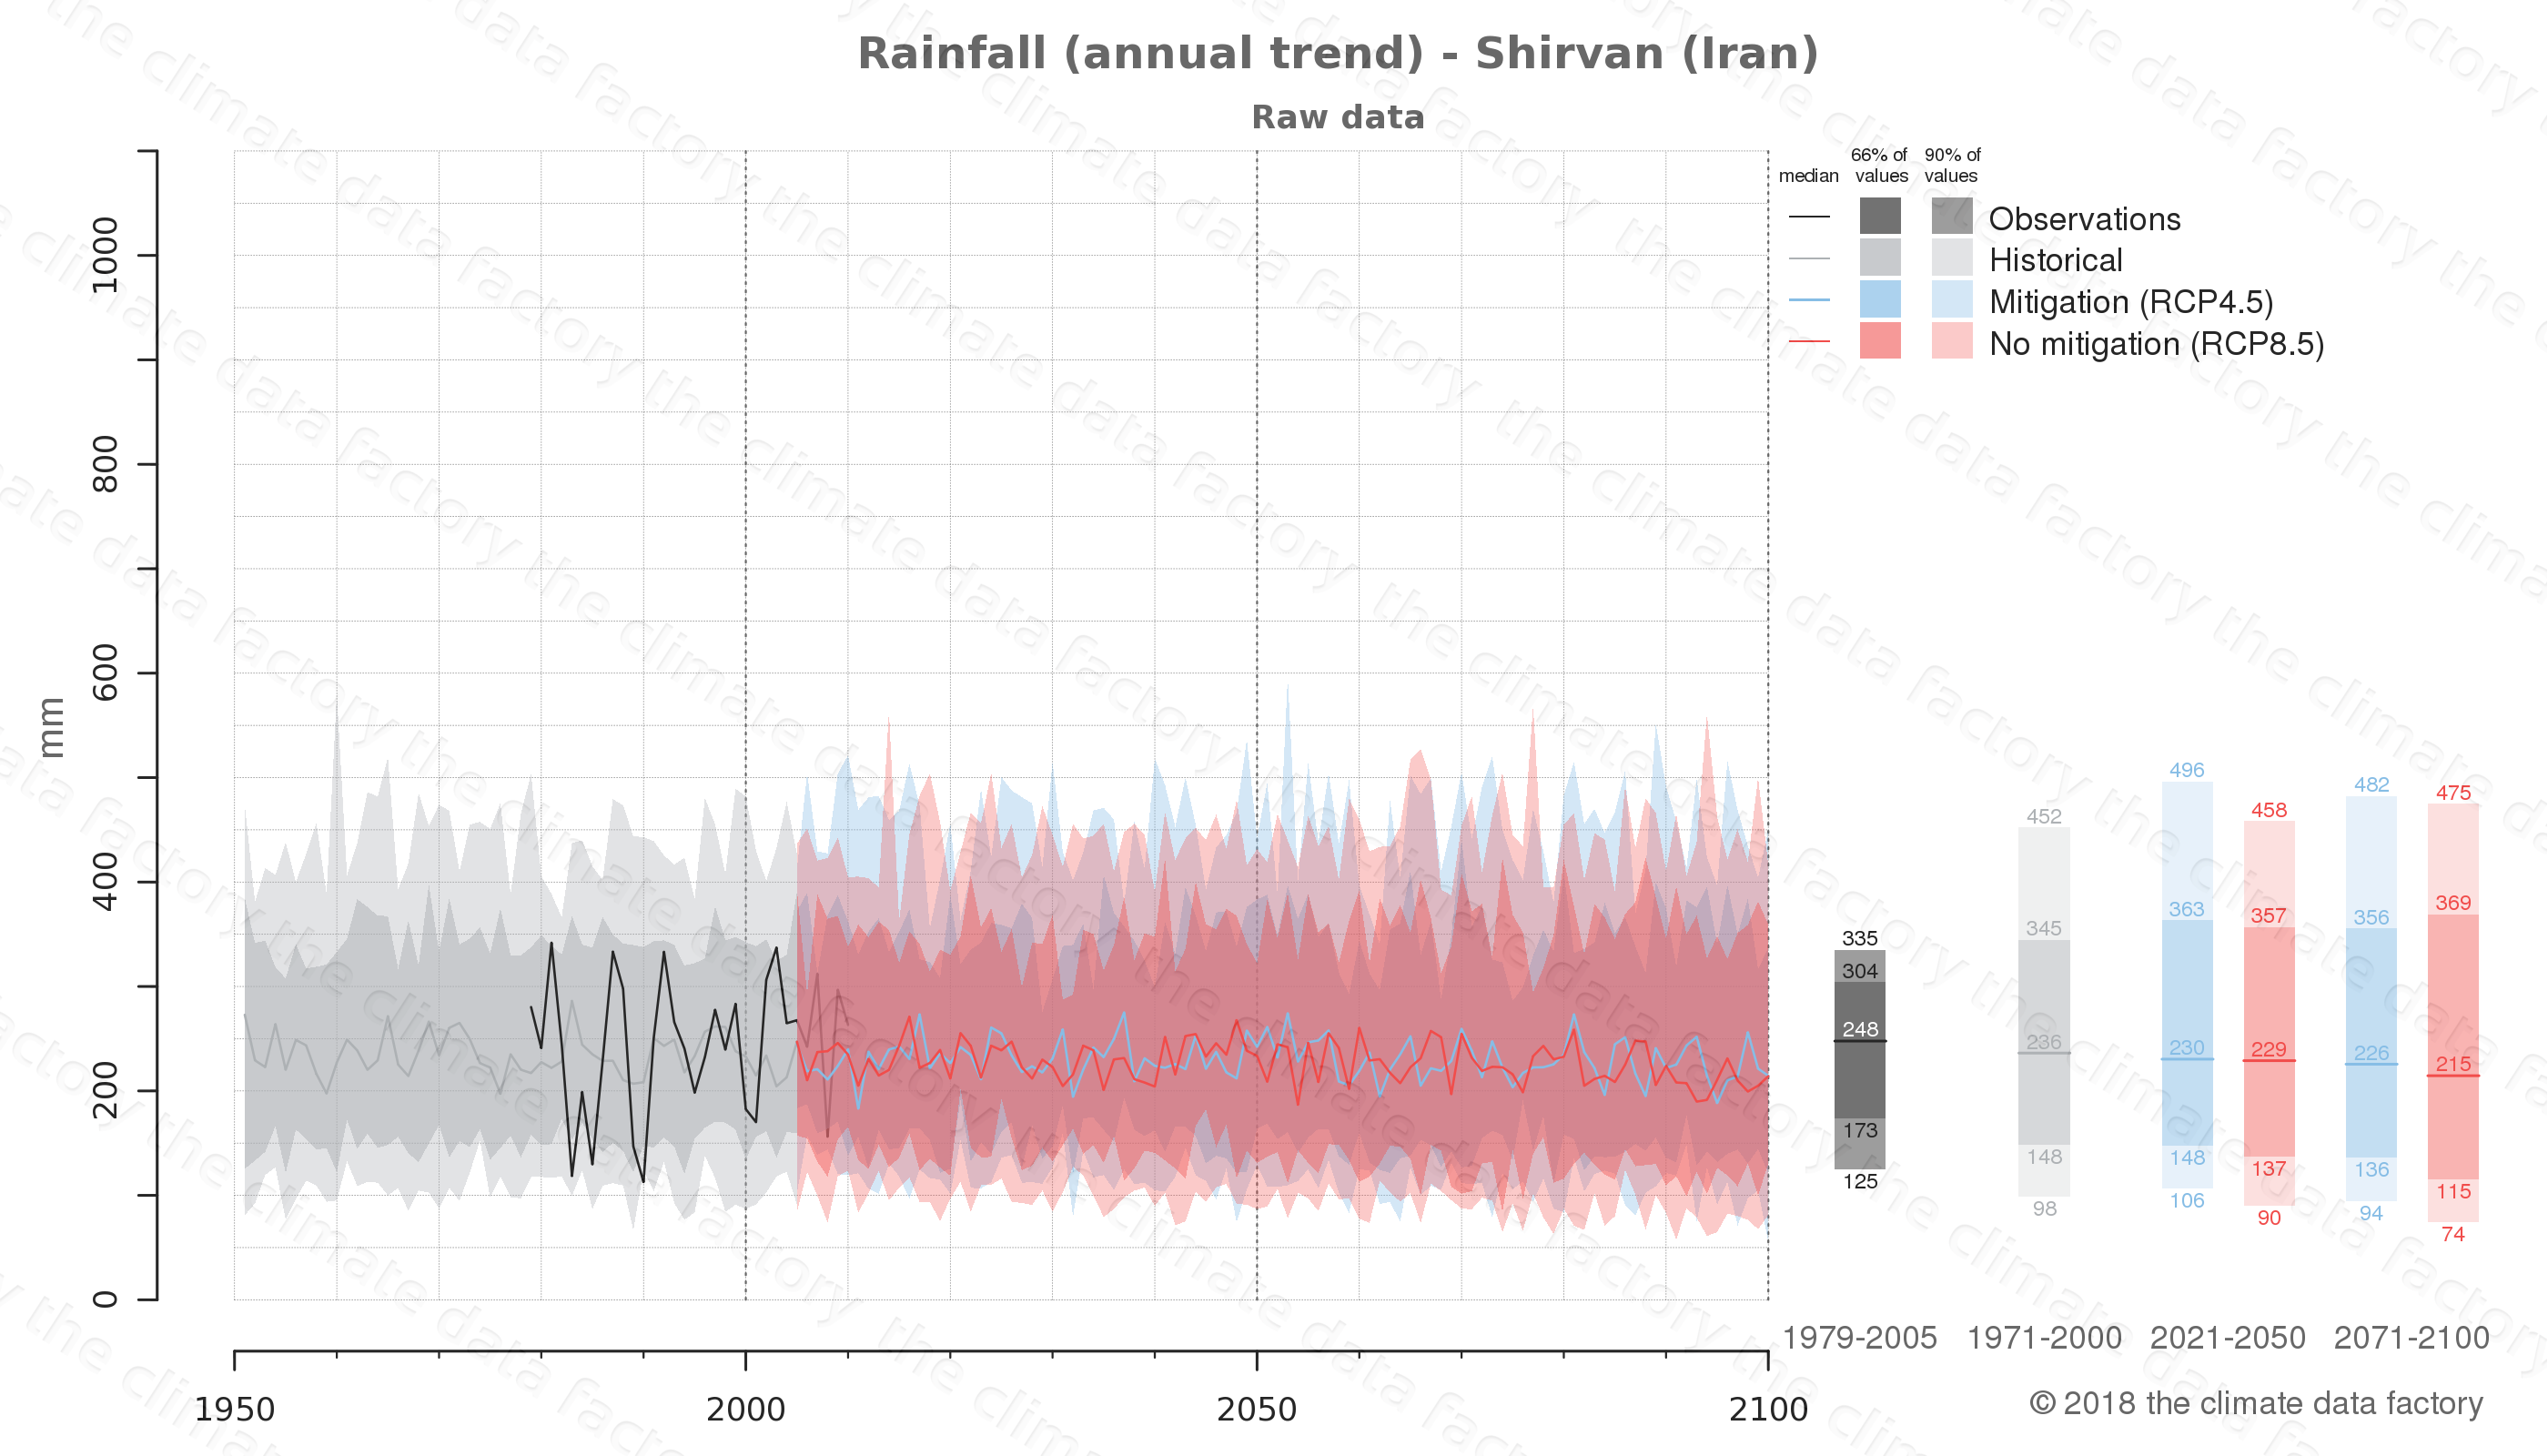 climate change data policy adaptation climate graph city data rainfall shirvan iran